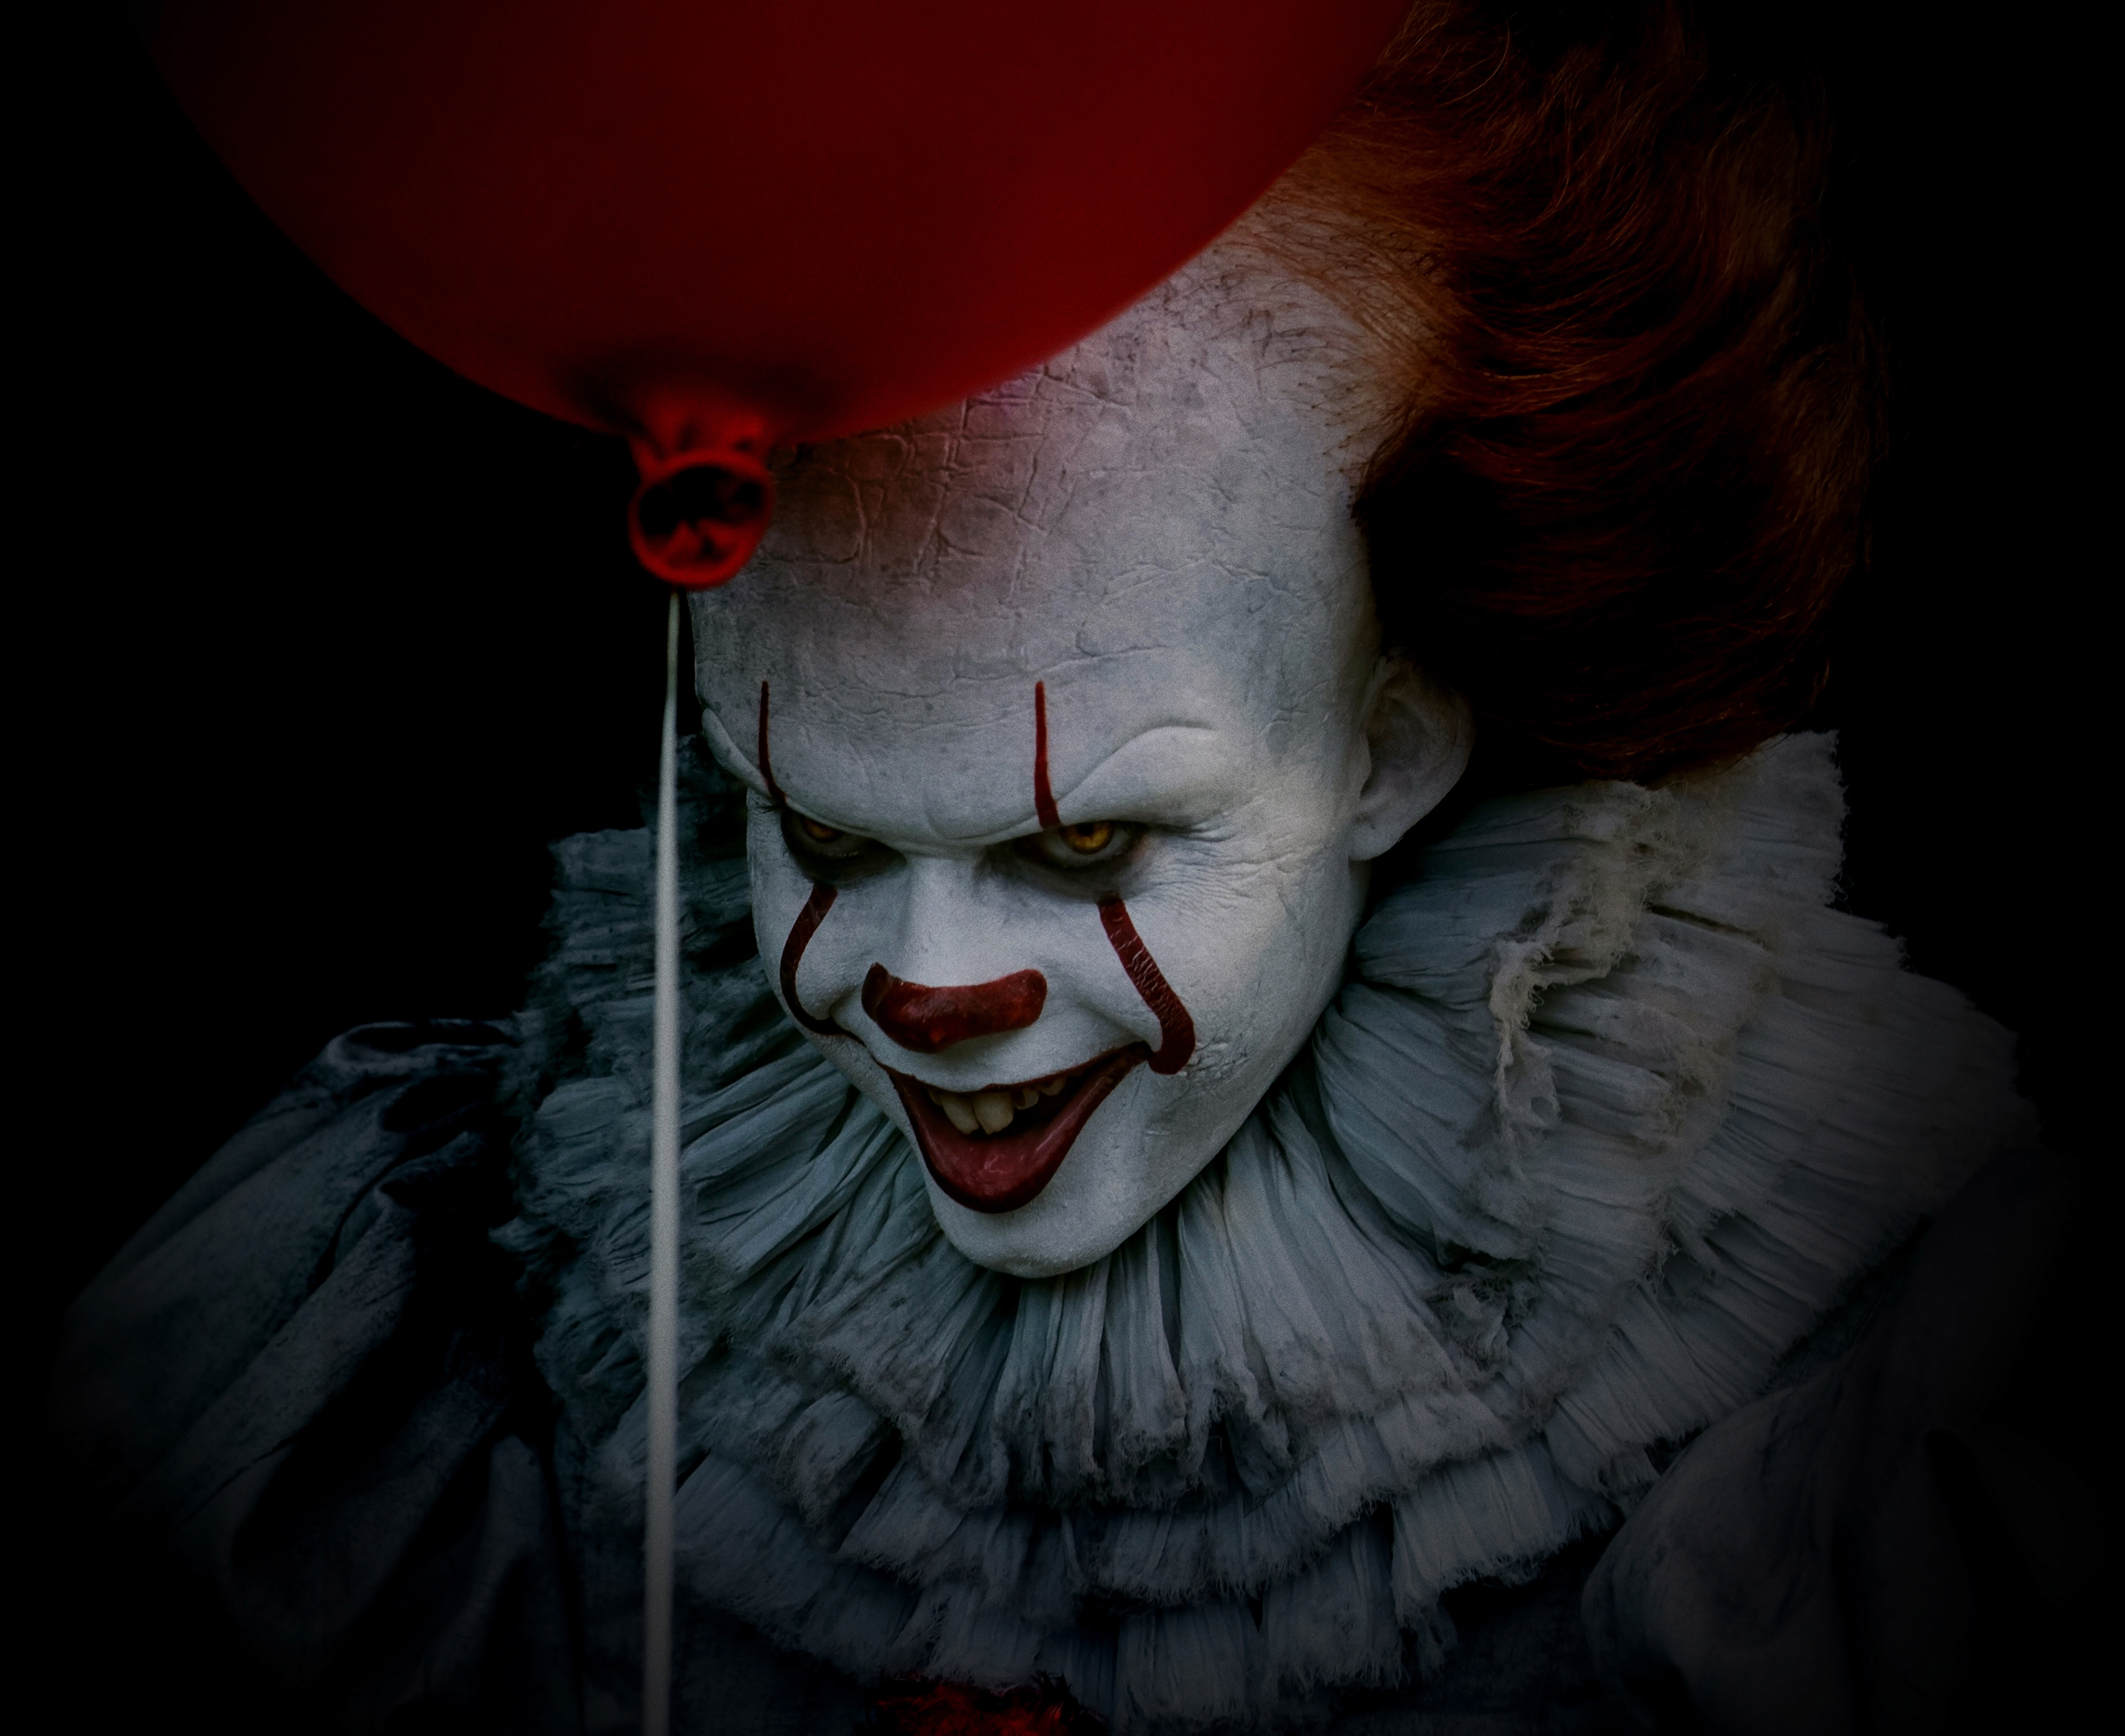 It Pennywise 8k. ««